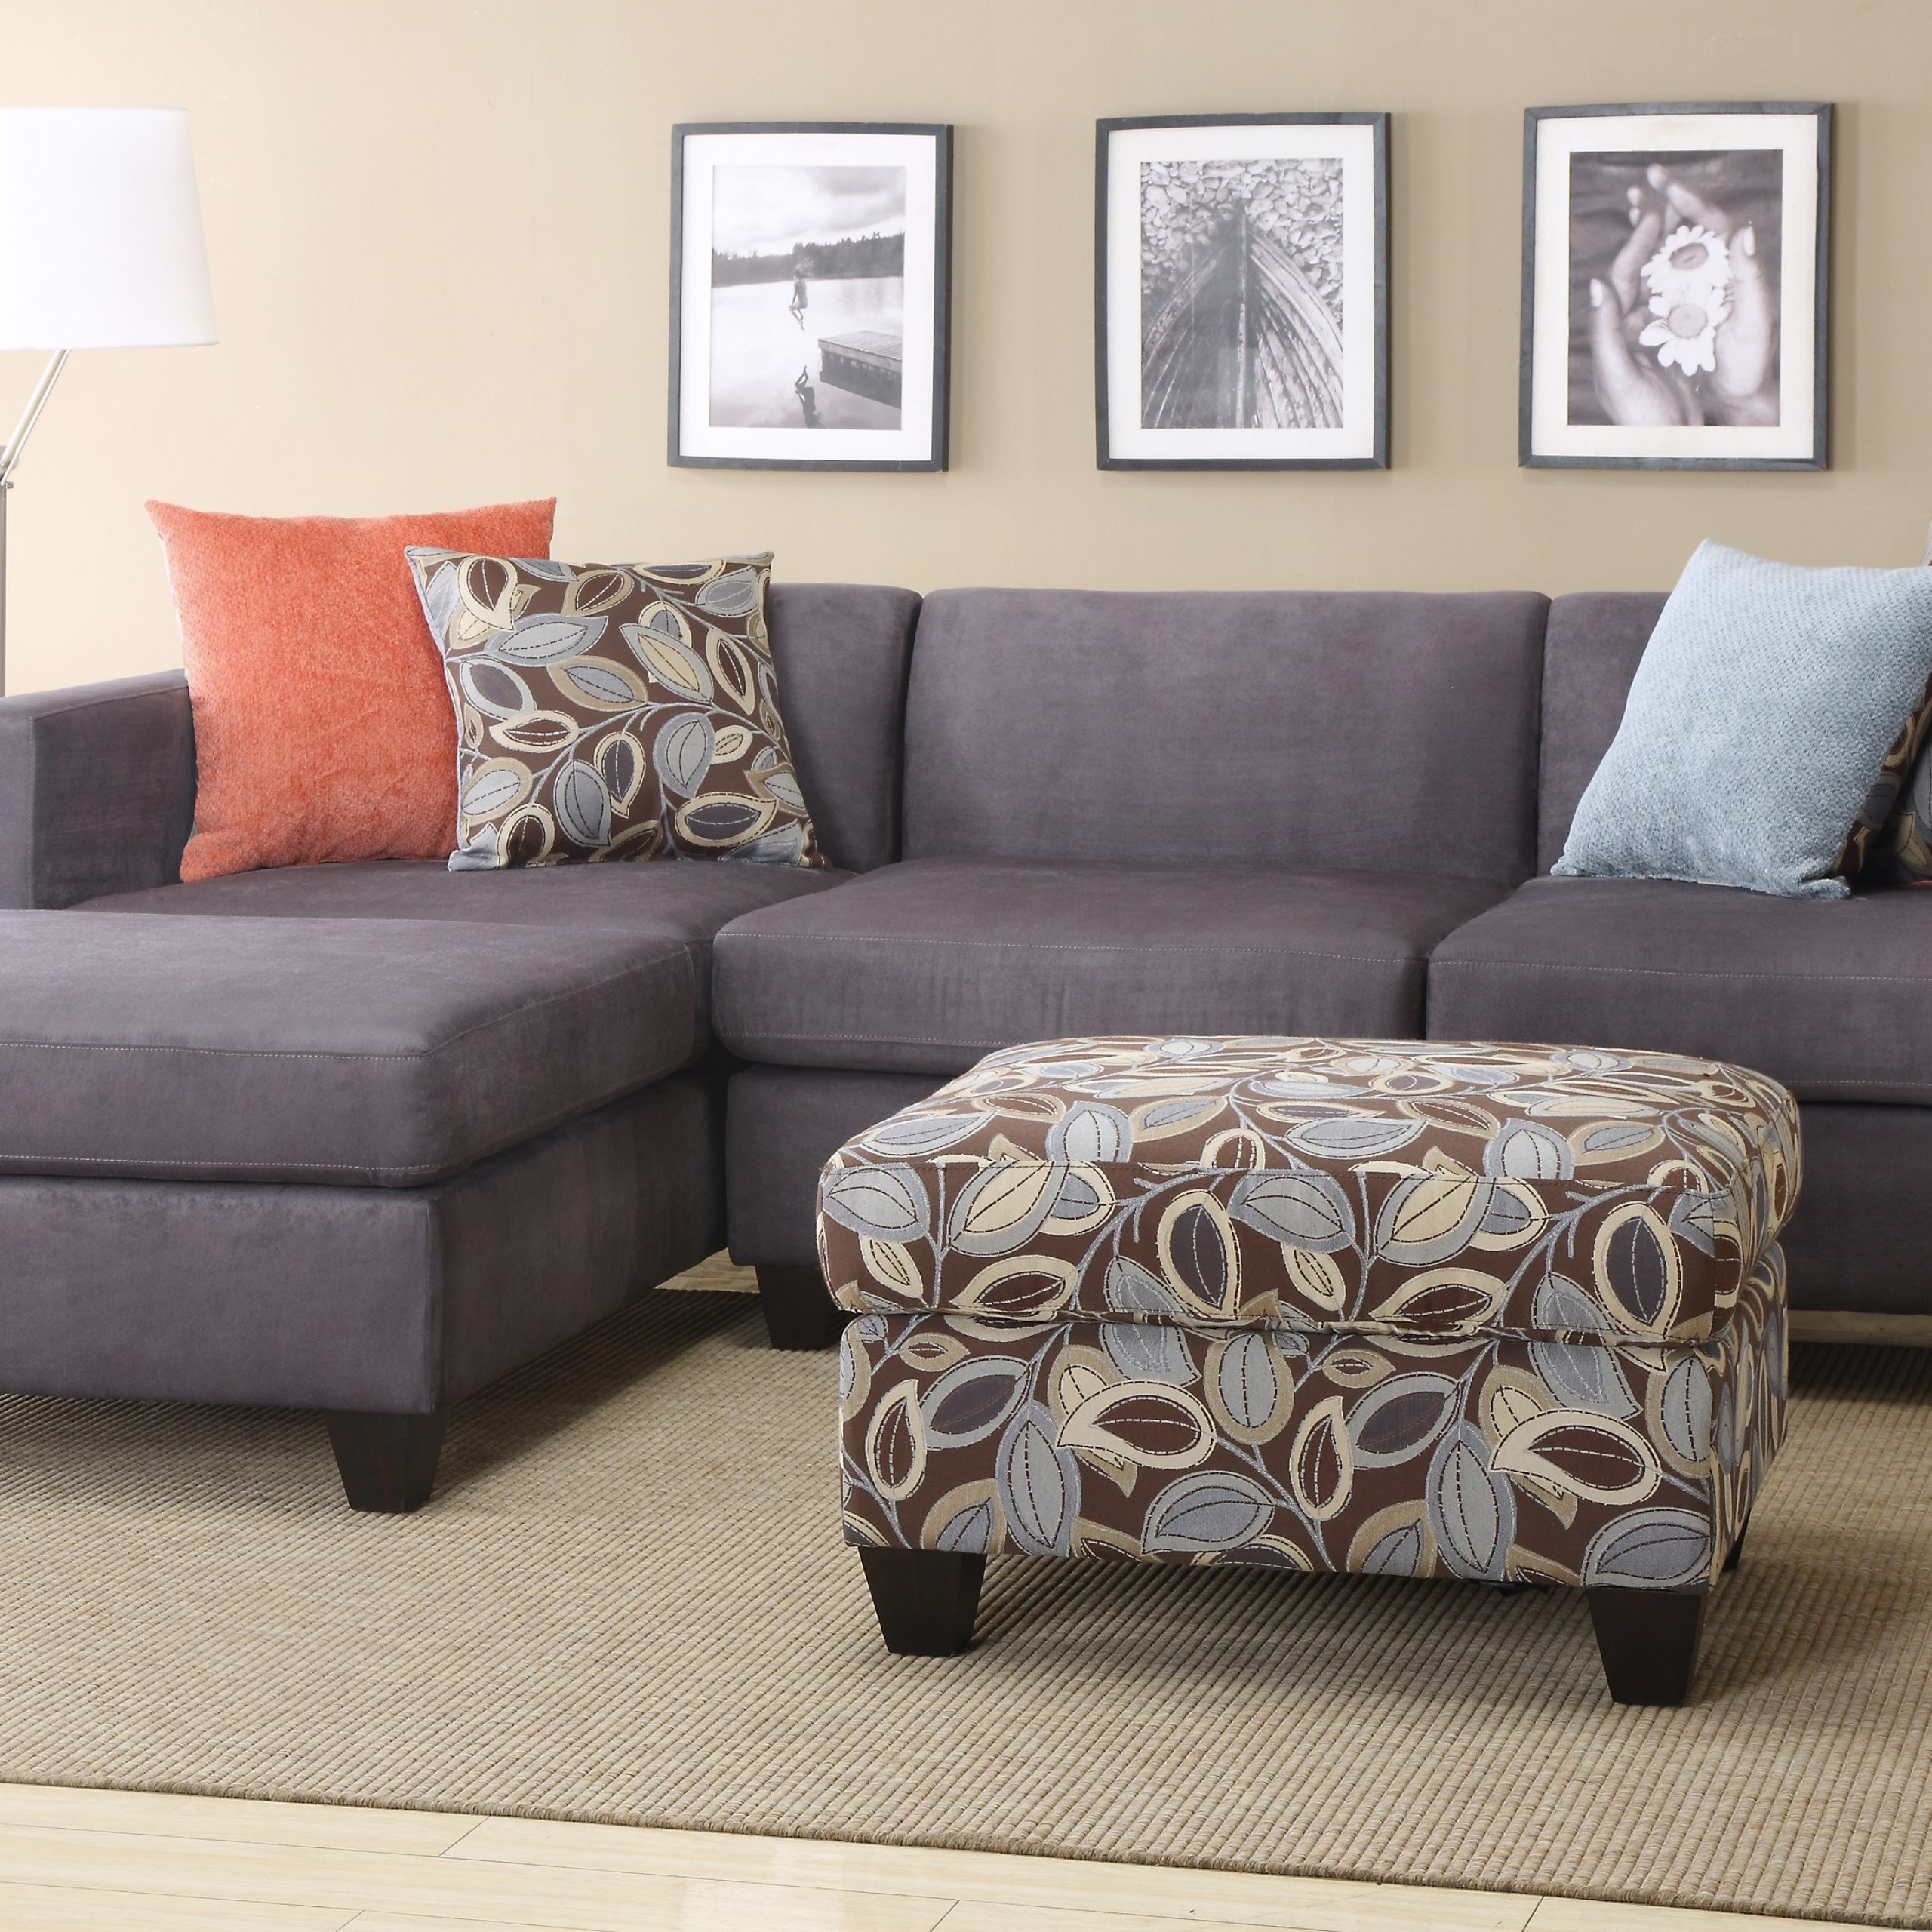 2 Piece Sectional Sofa With Chaise Design – Homesfeed Throughout 4Pc Crowningshield Contemporary Chaise Sectional Sofas (View 15 of 15)